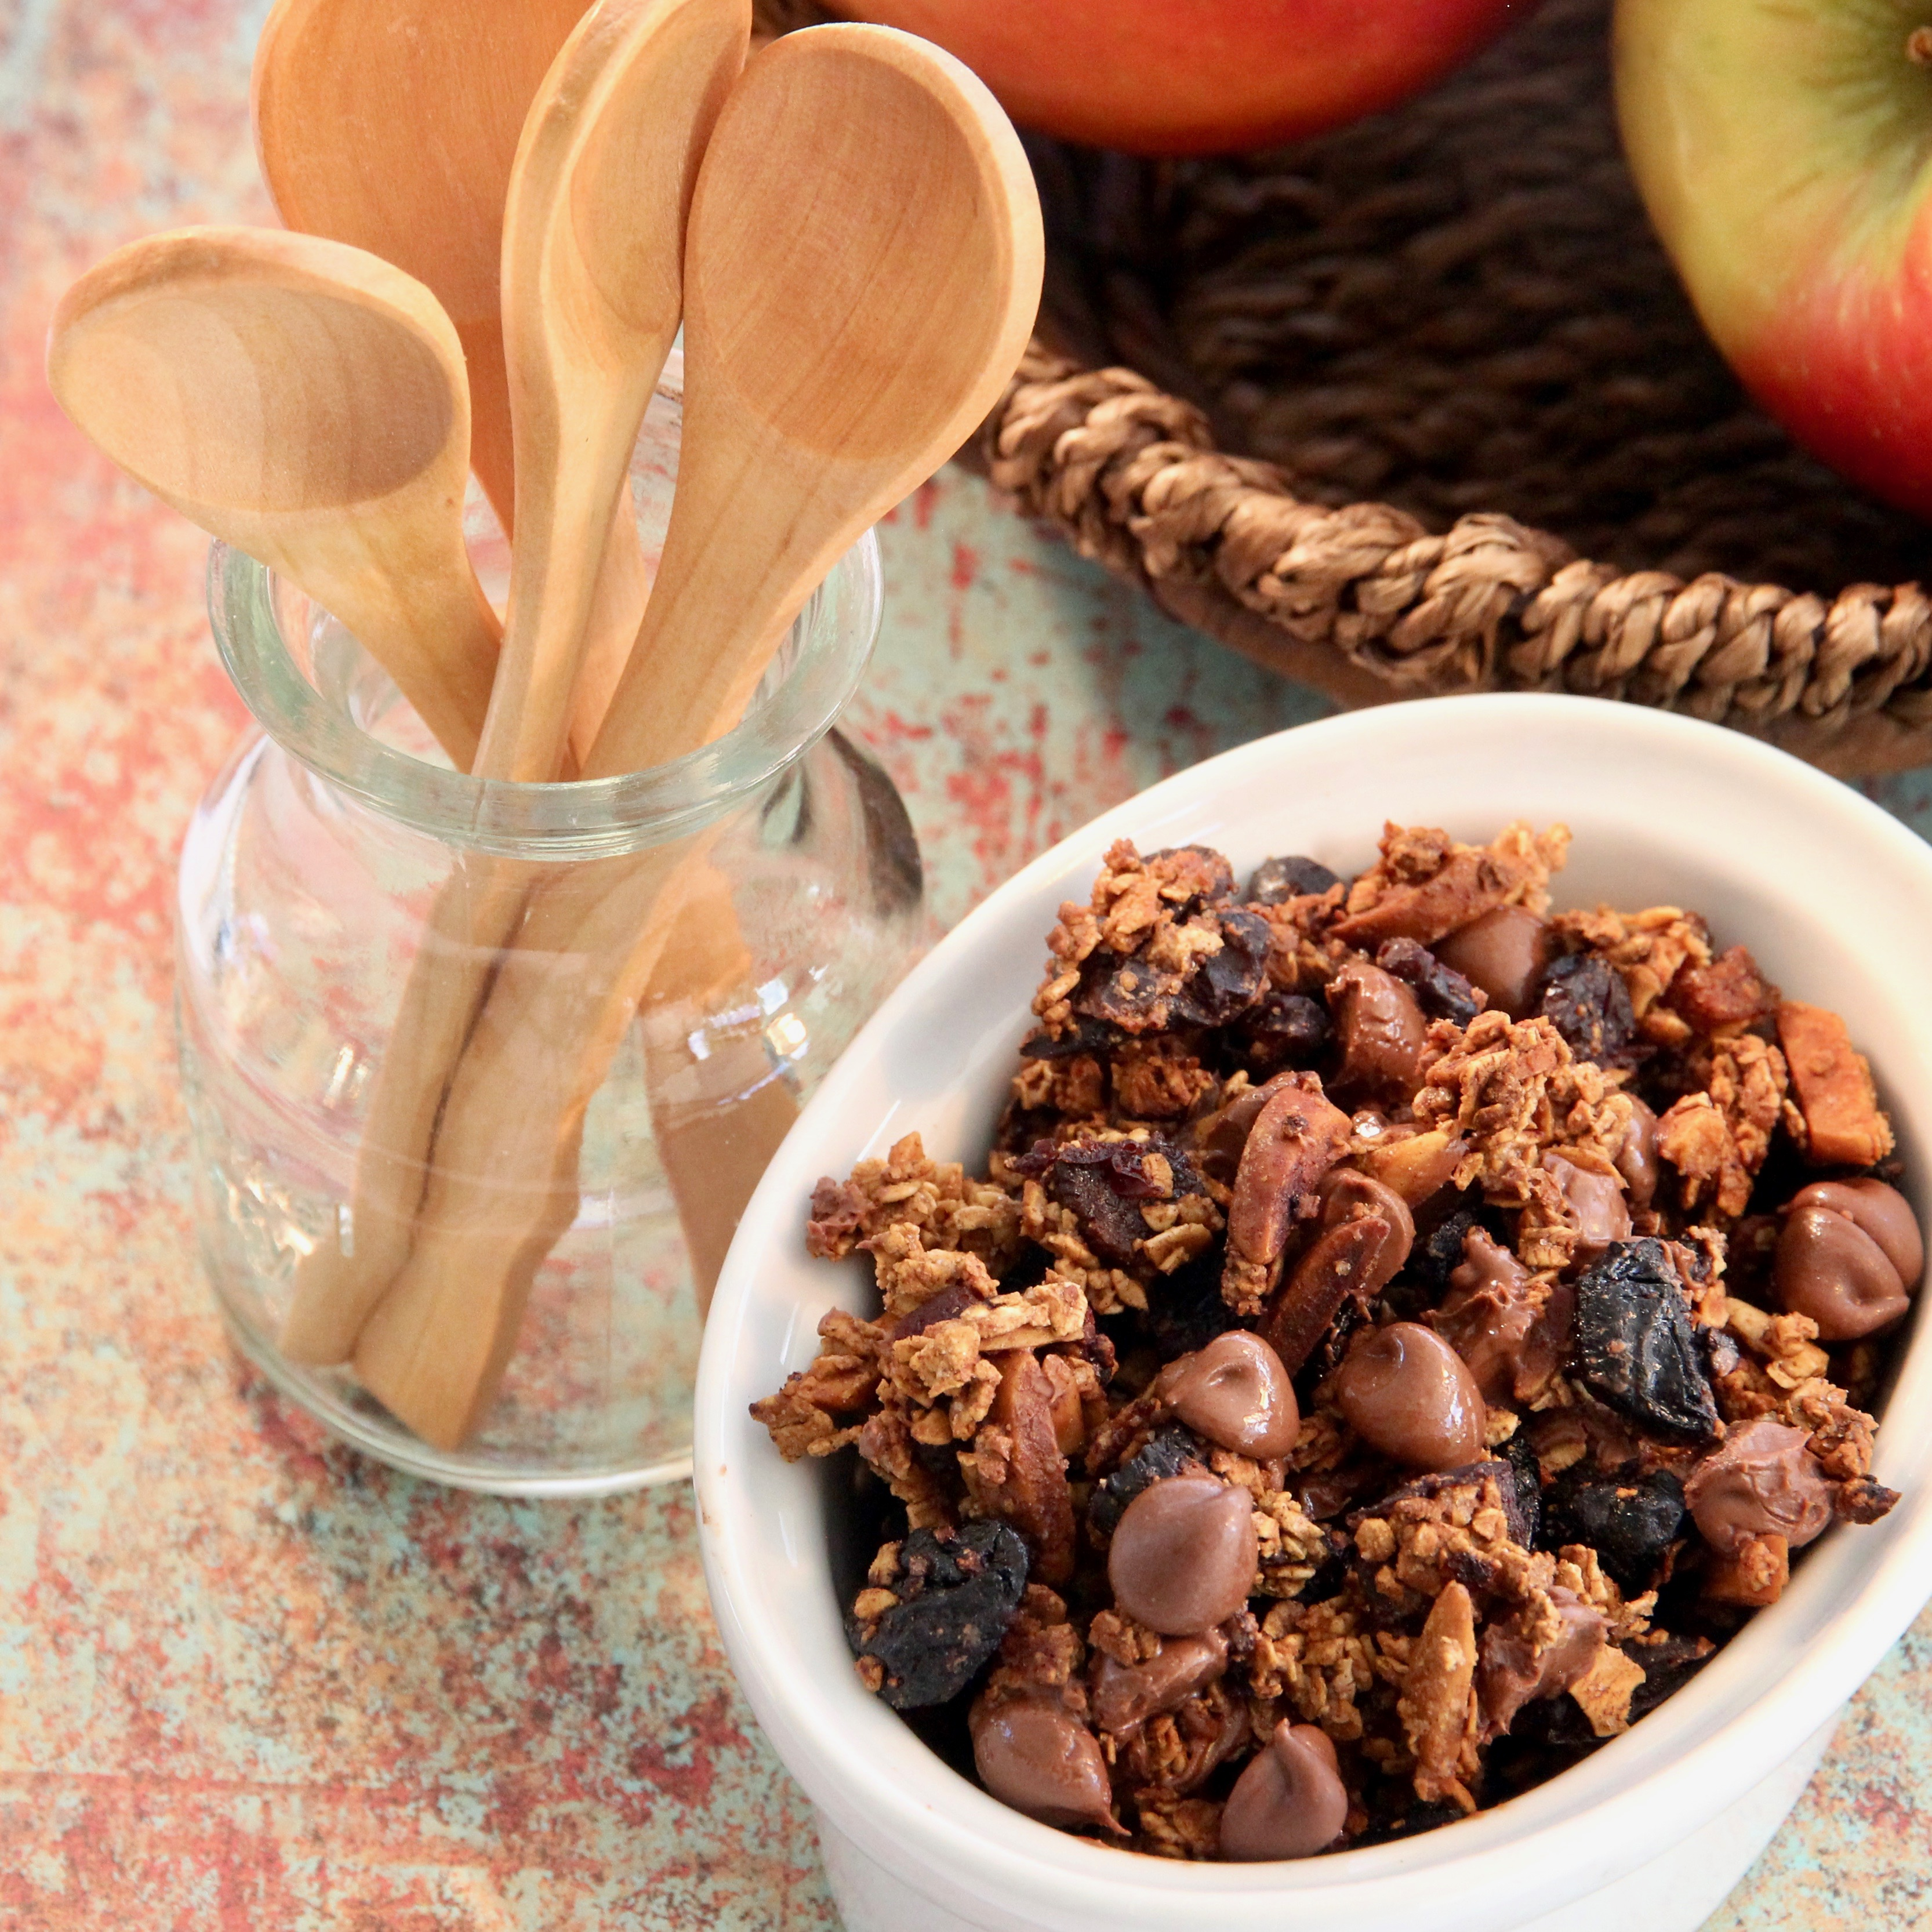 Fruit and Nut Granola (Chrissie's Granola)